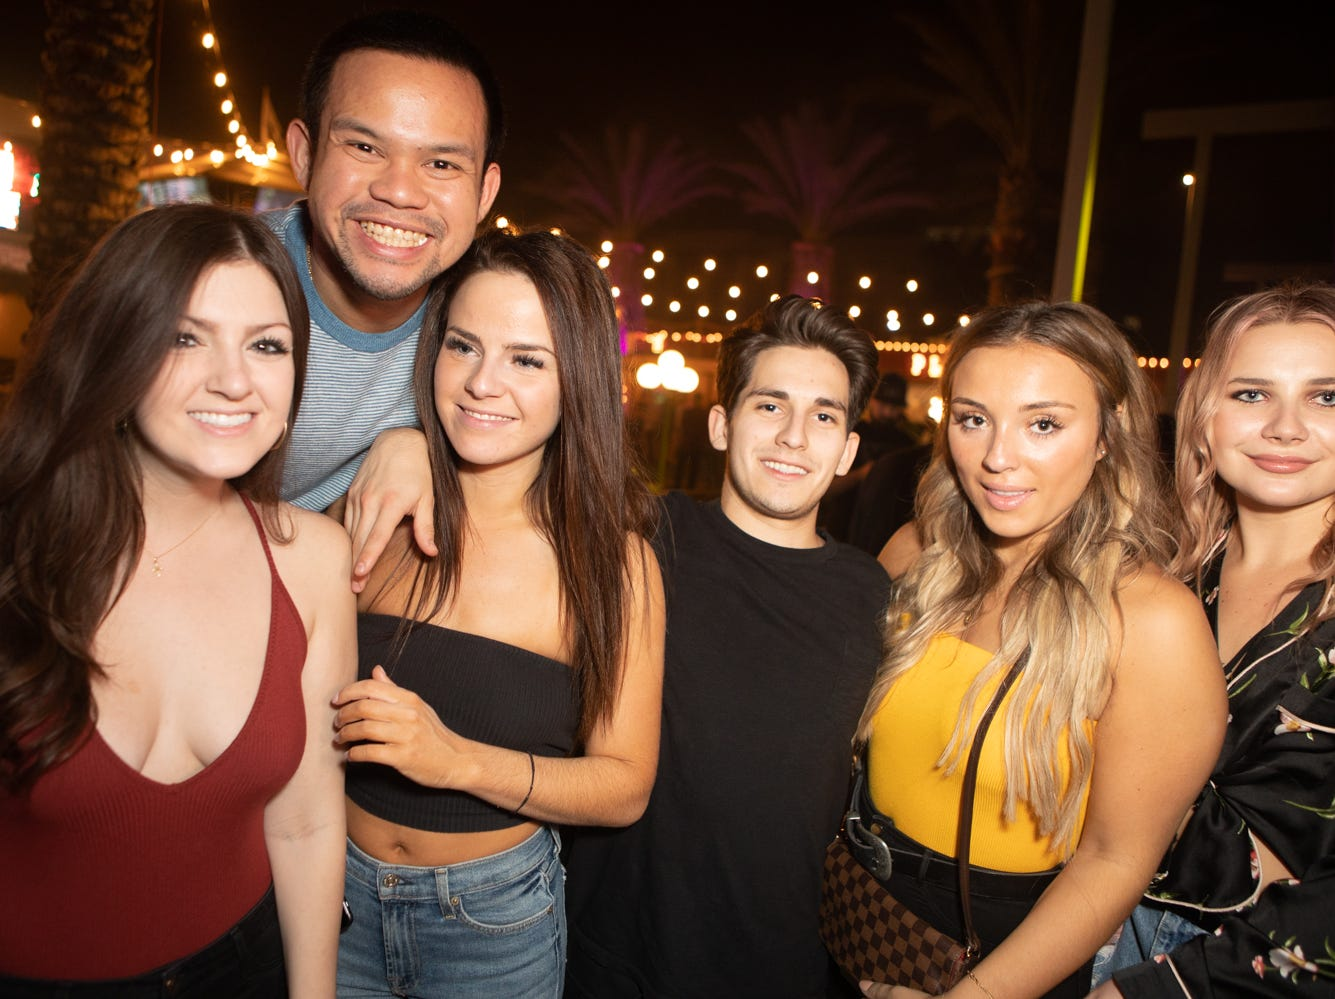 EDM DJ A-Trak had fans dancing inside while partygoers outside enjoyed games and fun at Maya on Friday, Oct. 12, 2018 in Scottsdale.